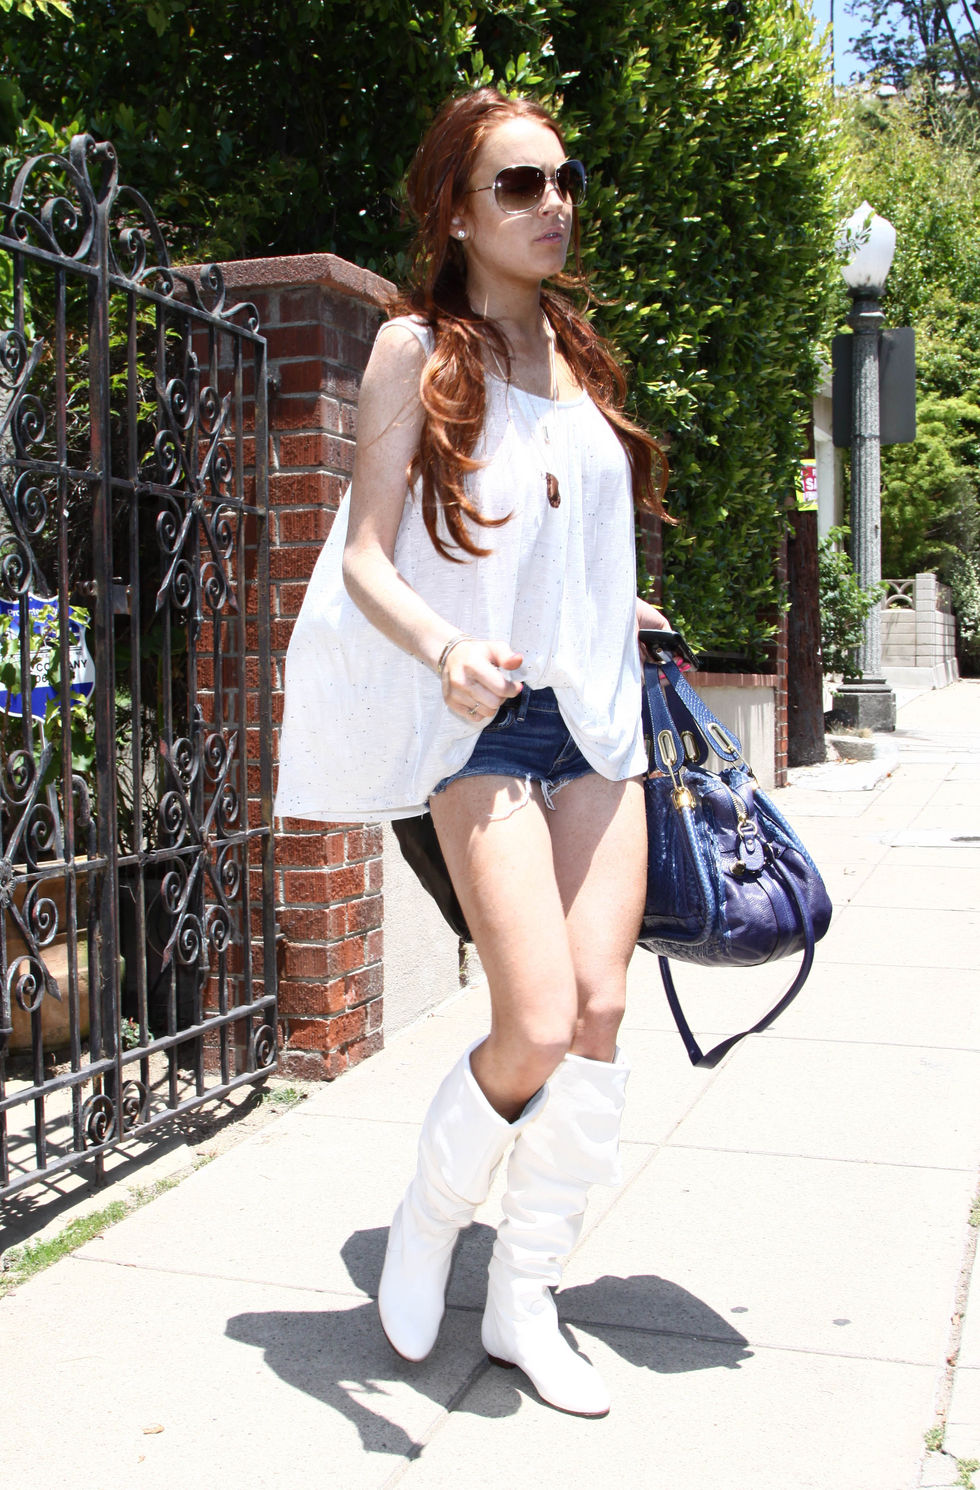 lindsay-lohan-candids-in-los-angeles-5-01